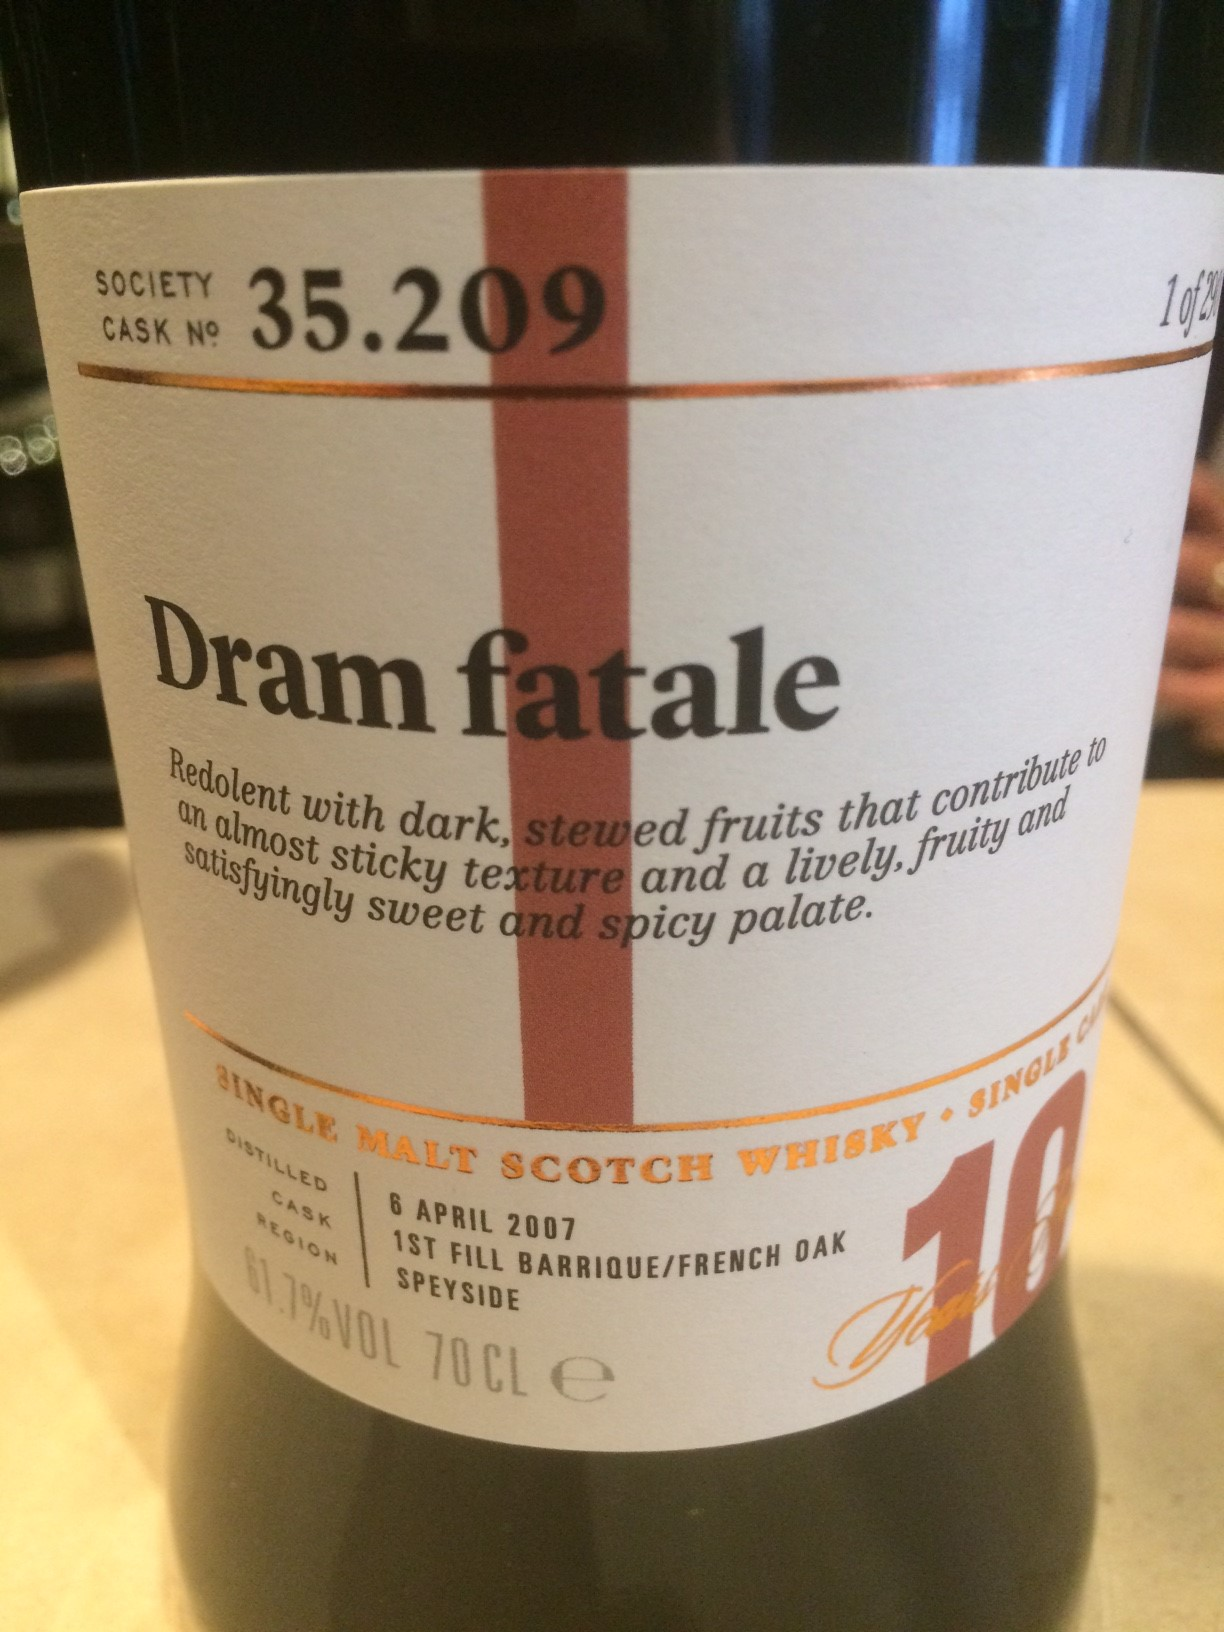 The Dramble's review of SMWS 35.209 Dram Fatale